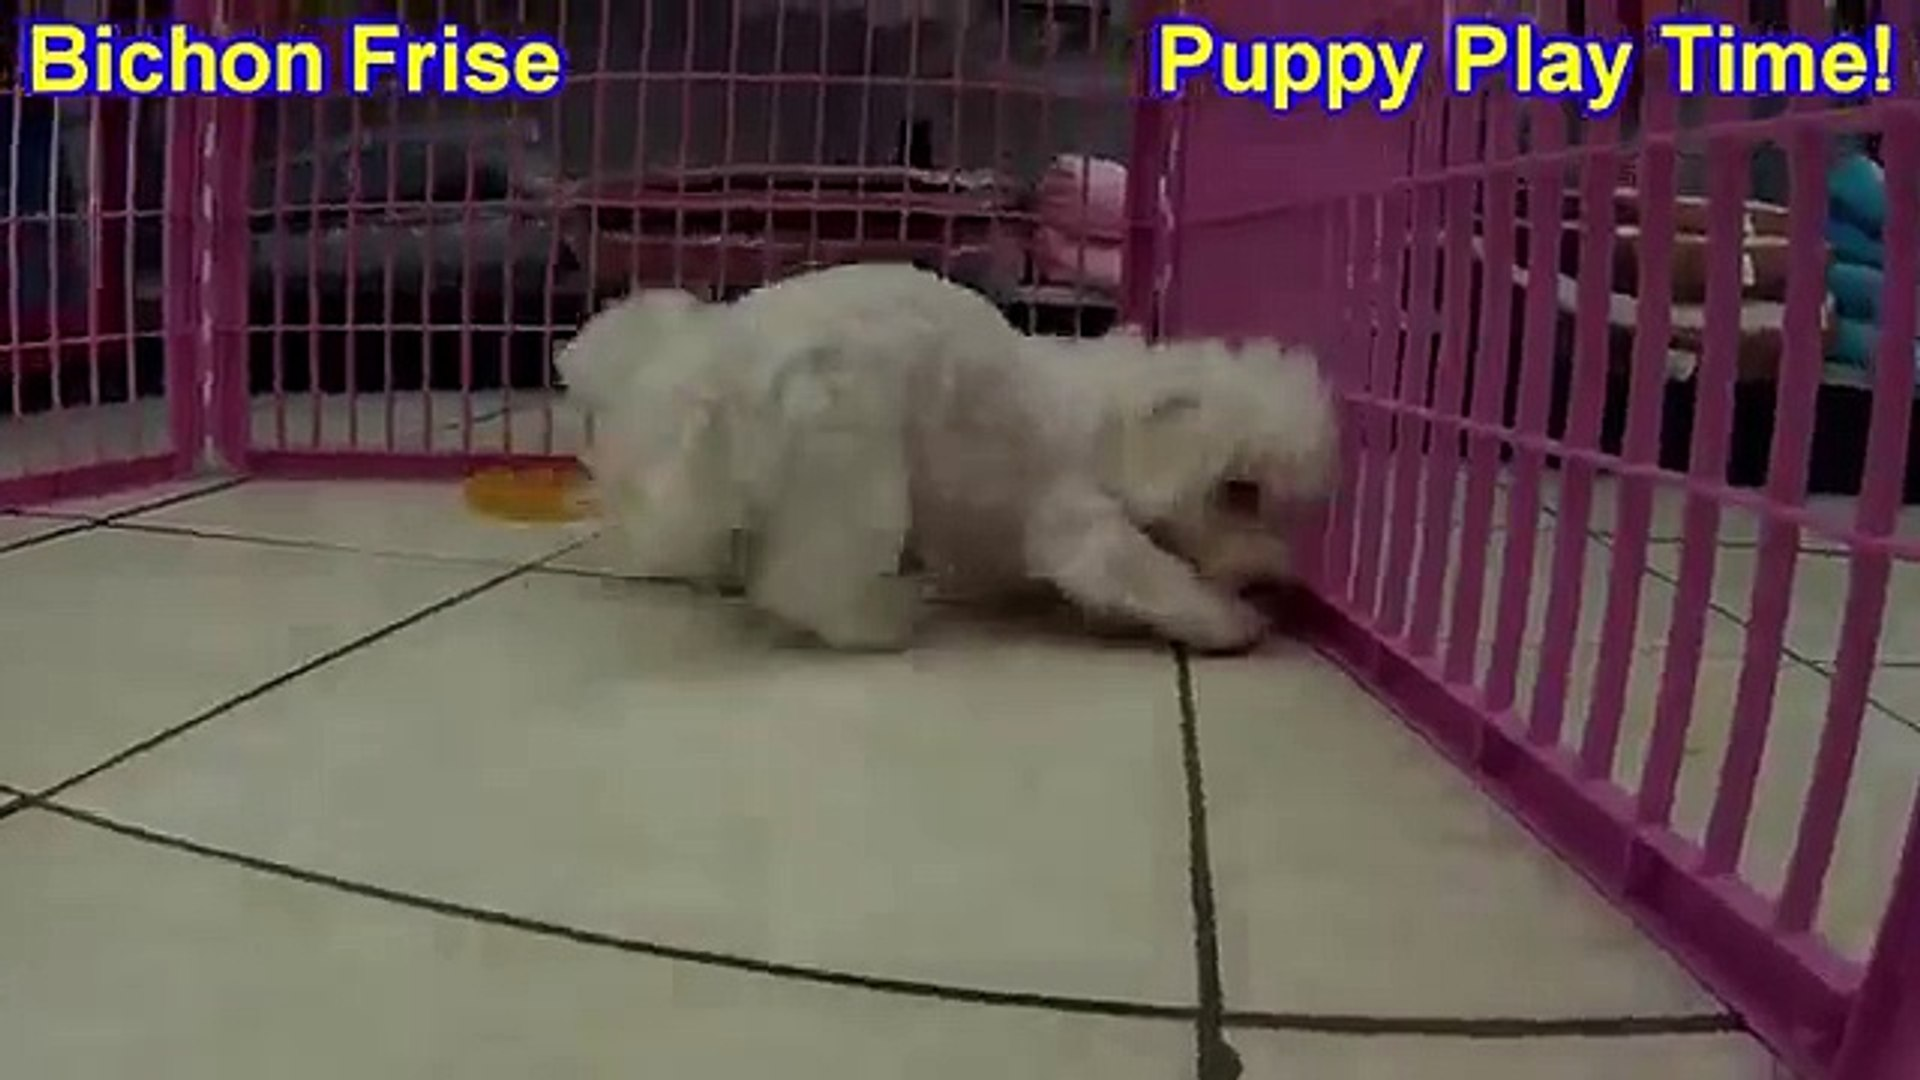 Bichon Frise, Puppies, For, Sale, In, West Jordan, Utah, County, UT, Utah,  Davis, Cache, Box Elder,